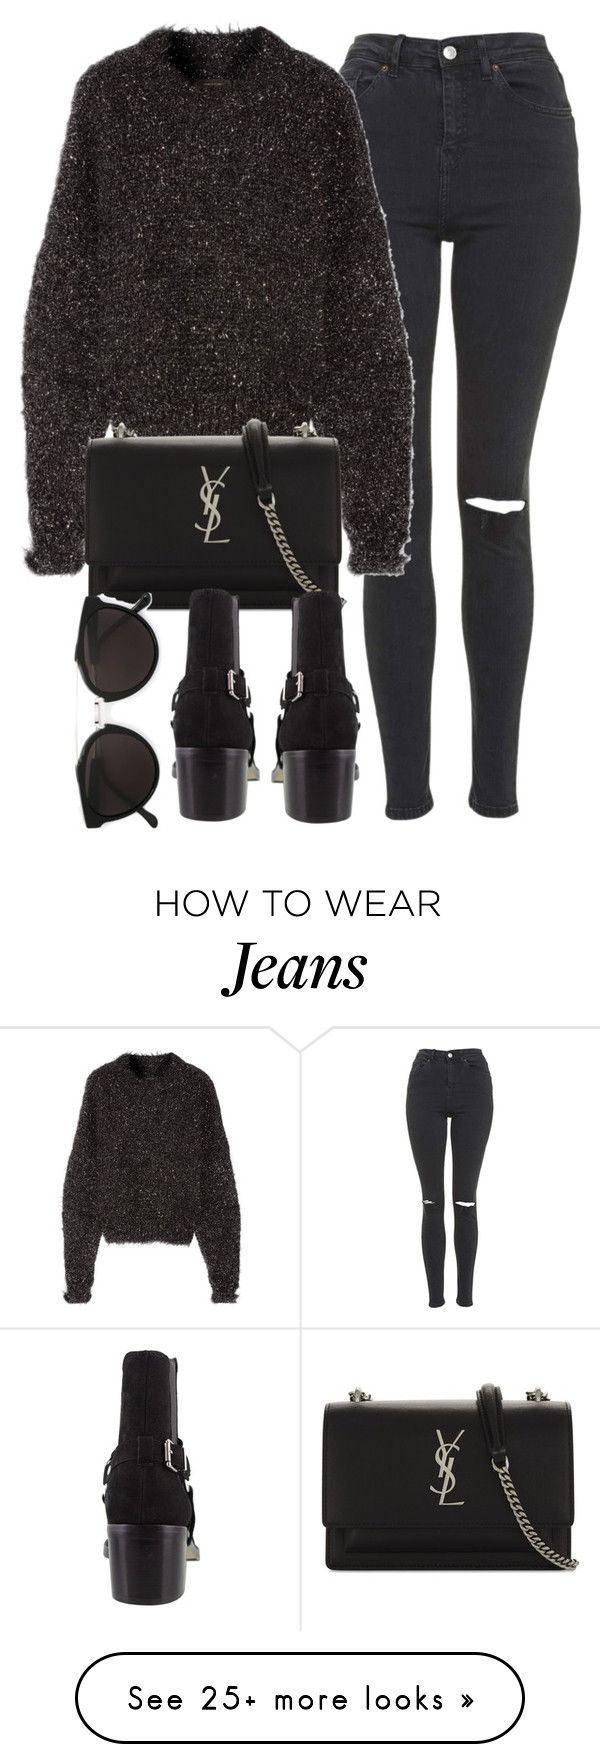 """Untitled #7117"" by laurenmboot on Polyvore featuring Topshop, Isabel Marant, Yves Saint Laurent and RetroSuperFuture"